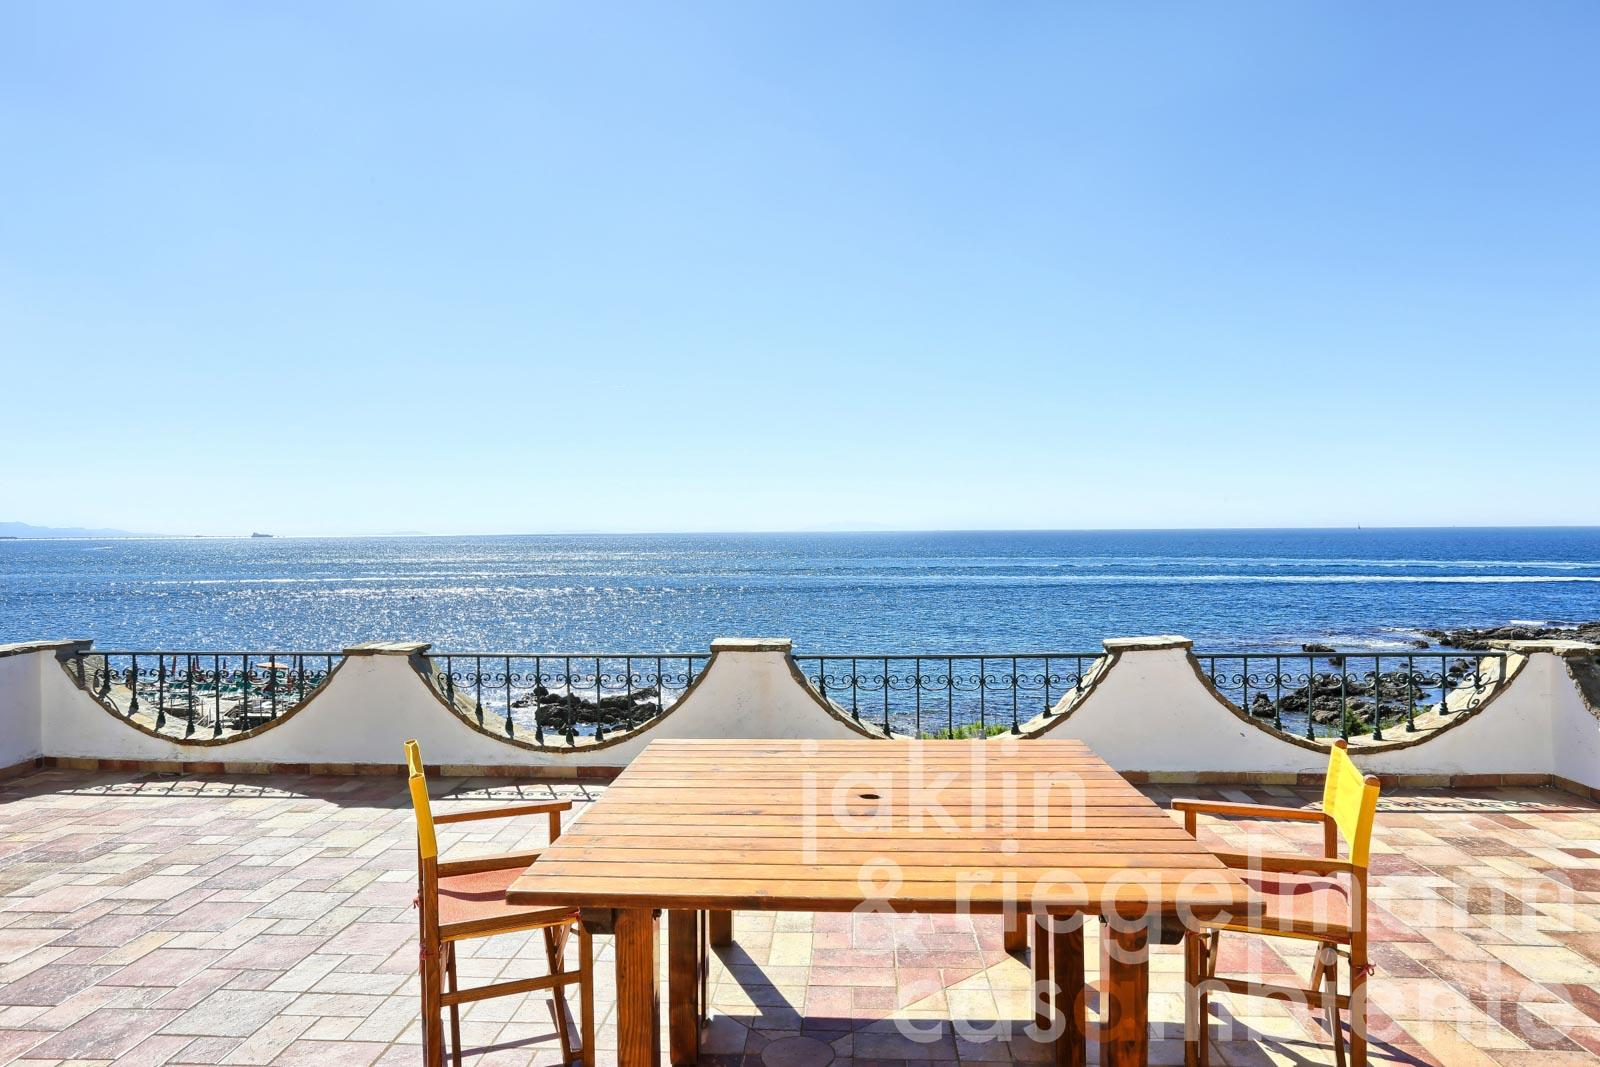 Exclusive villa with pool in Tuscany directly on the sea